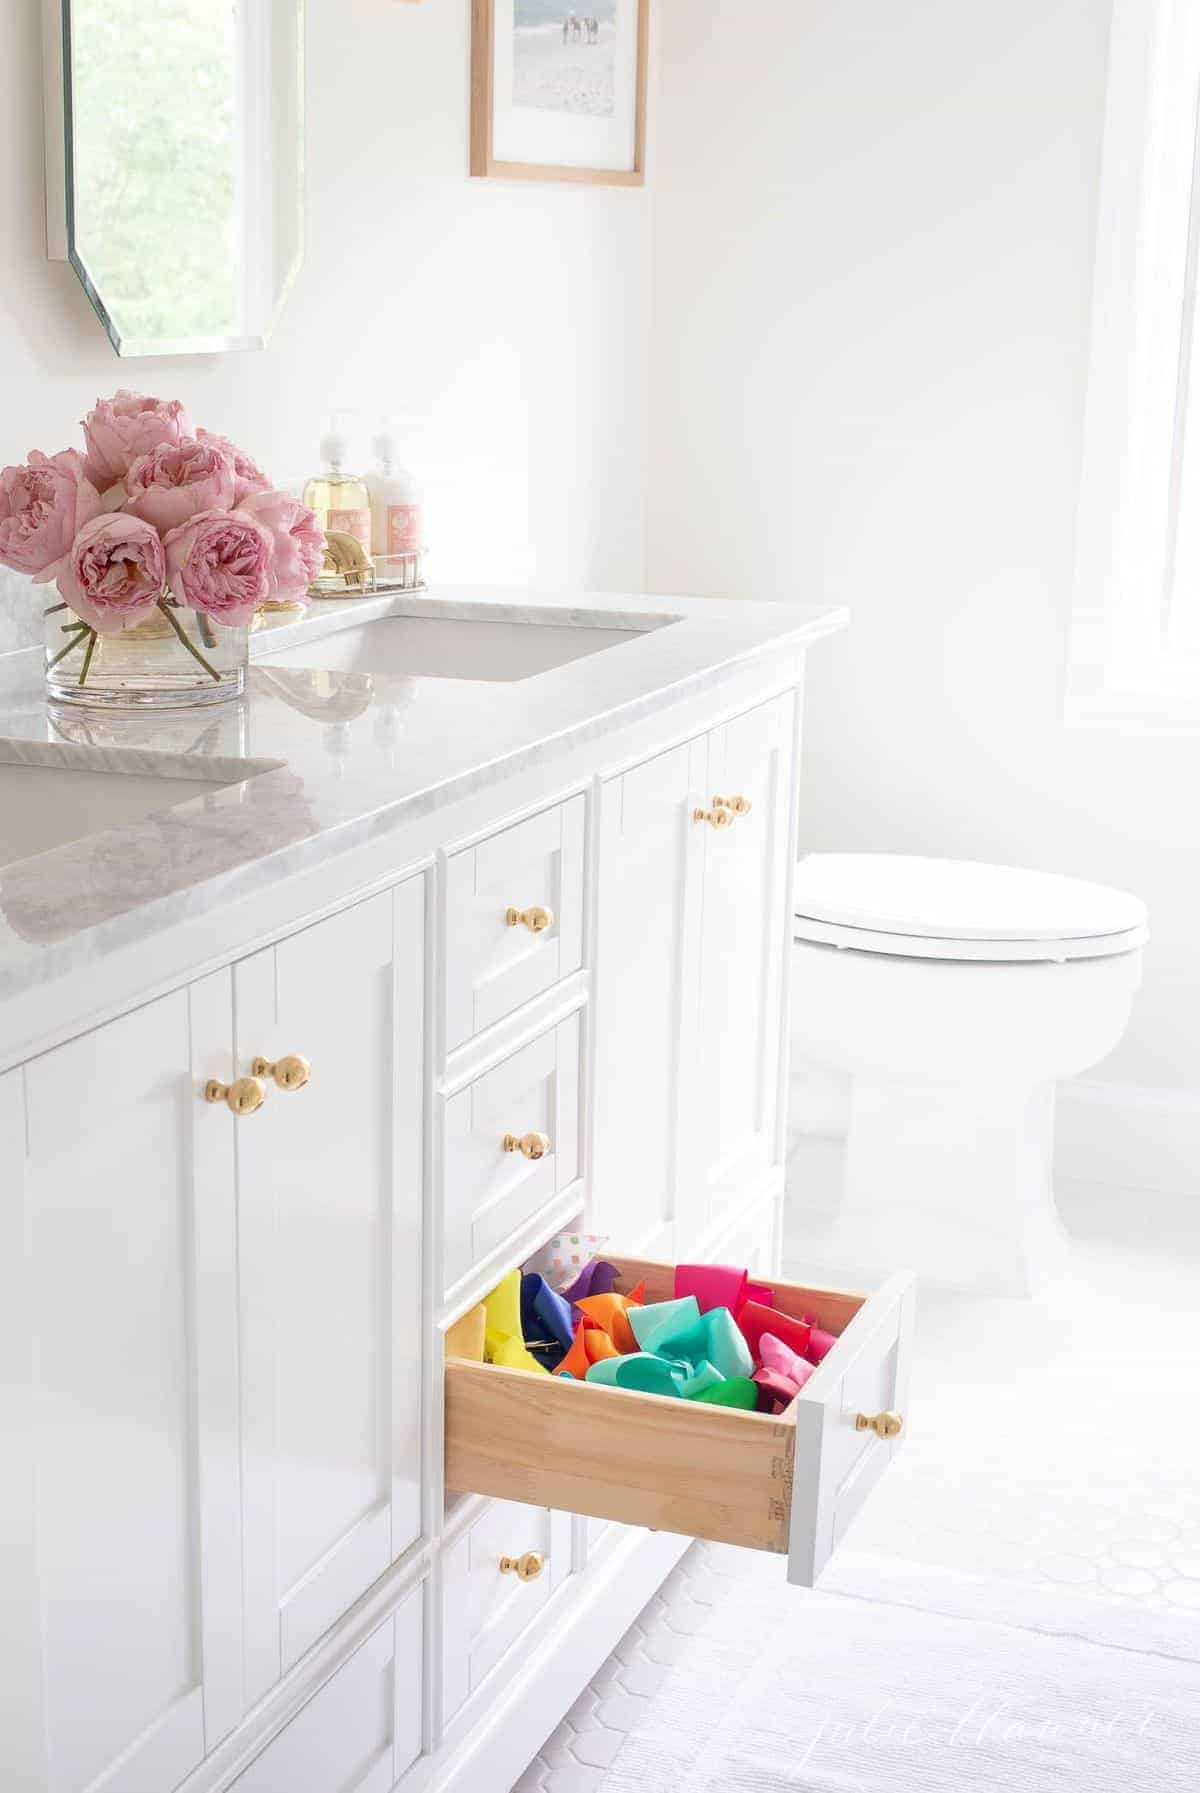 A shaker style bathroom vanity cabinet with gold knobs, one drawer pulled open to showcase storage.